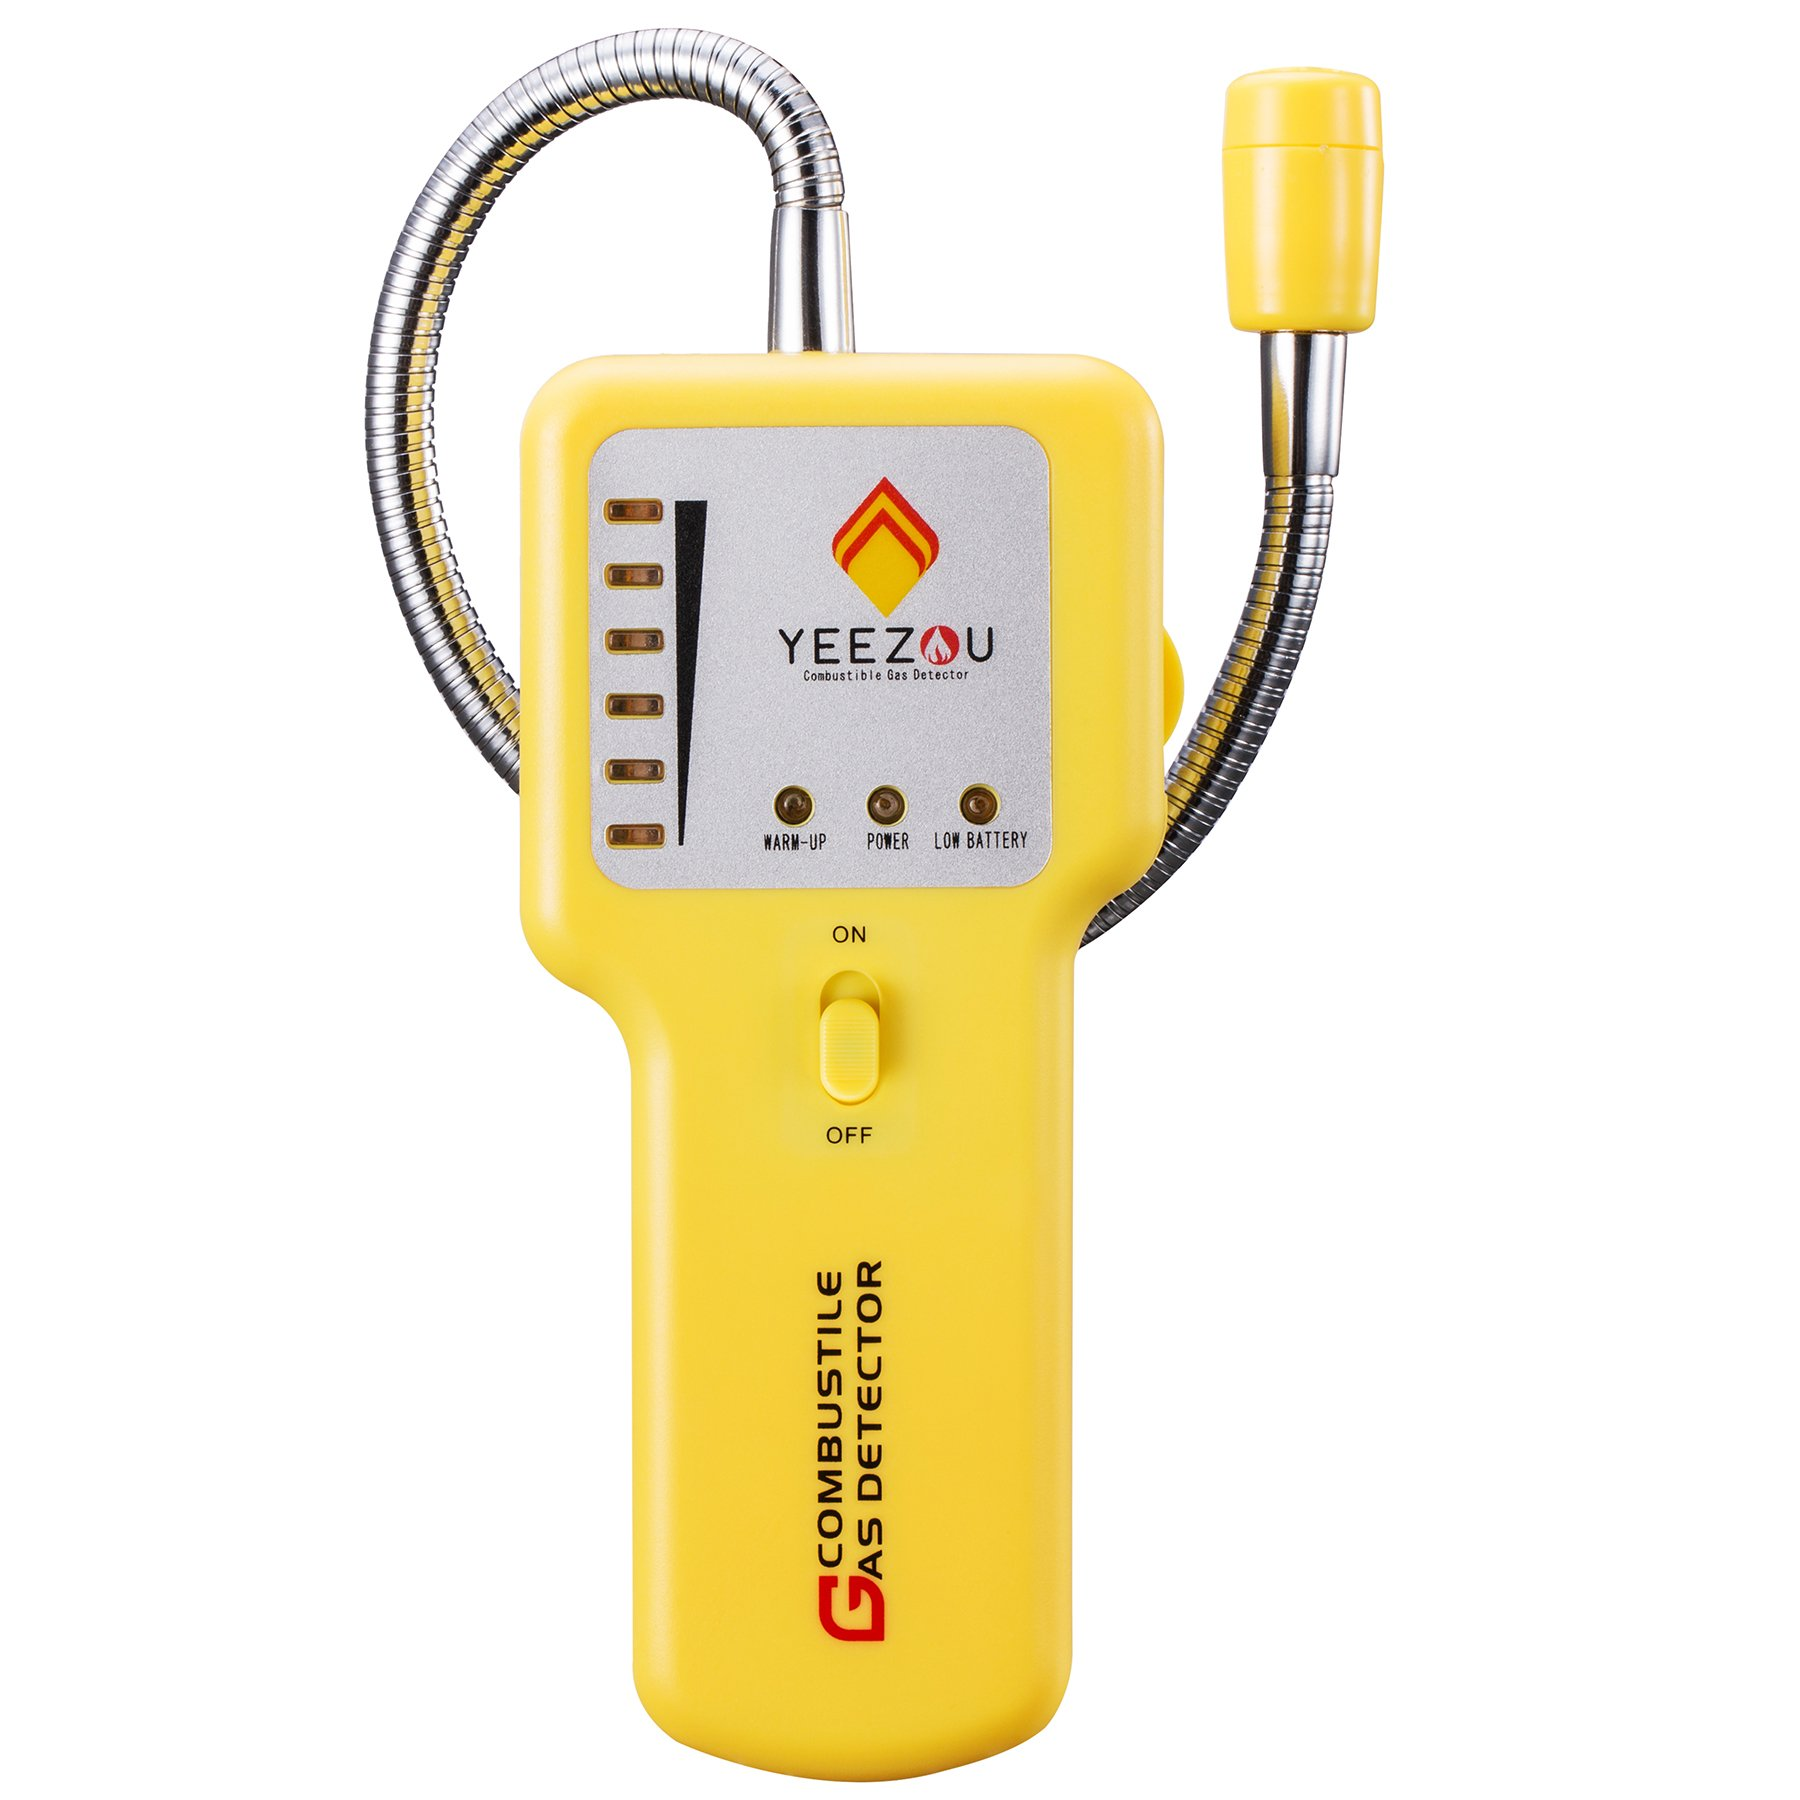 Techamor Y201 Portable Methane Propane Combustible Natural Gas Leak Sniffer Detector by TECHAMOR